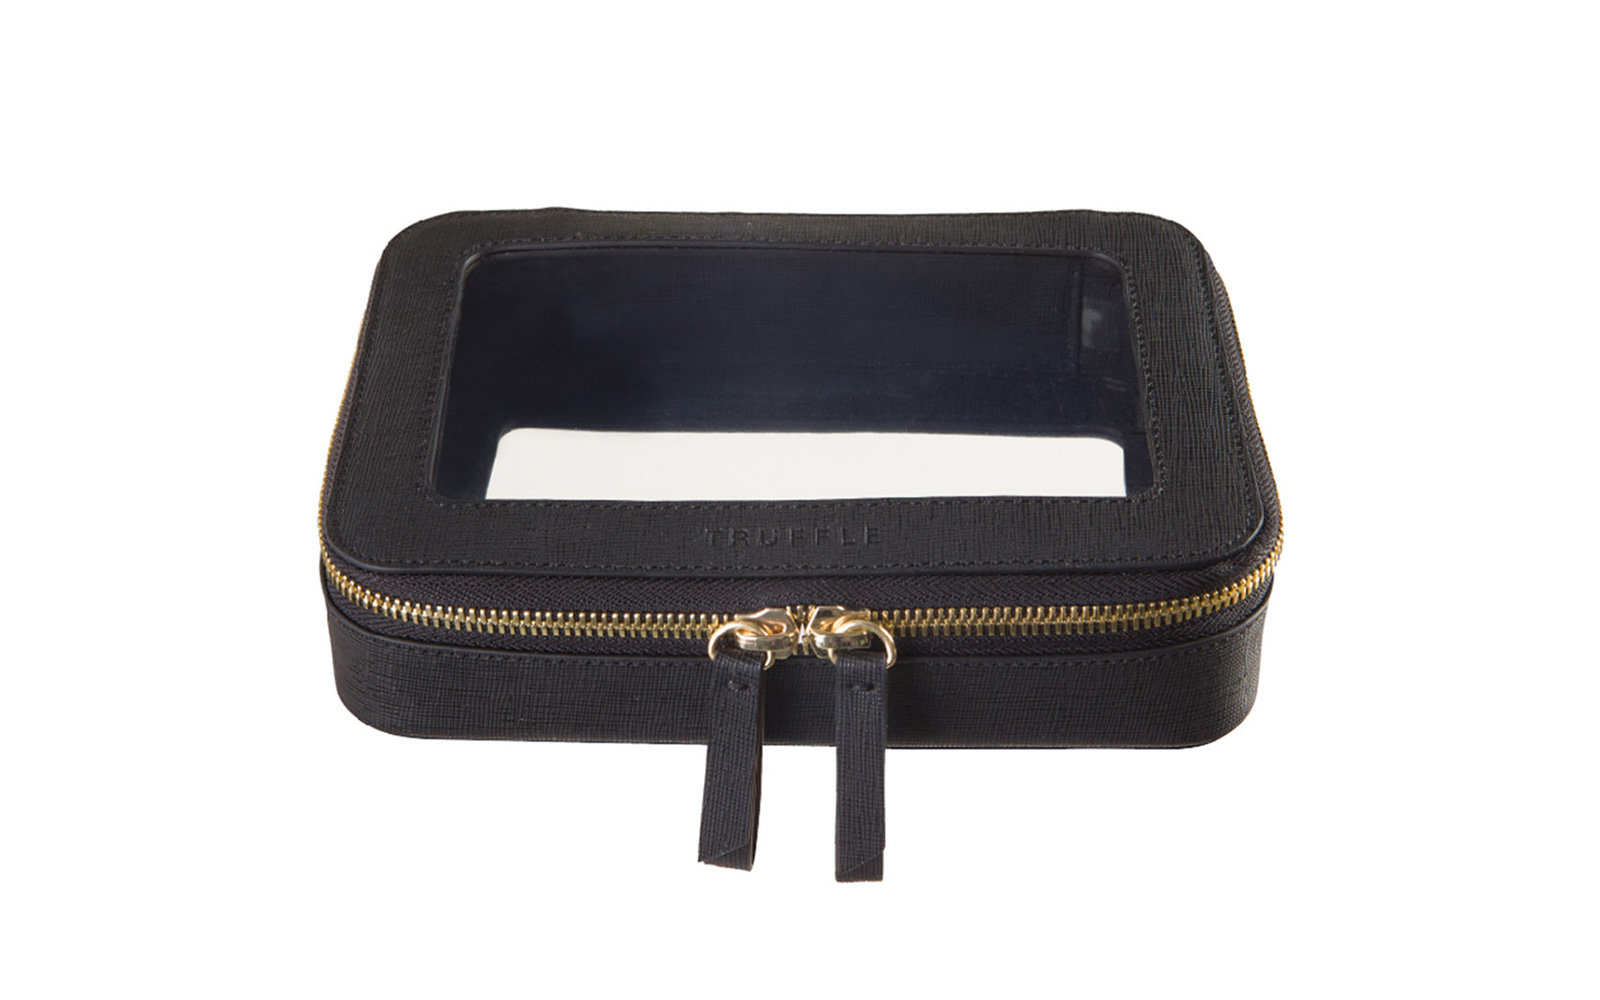 Best Leather Toiletry Bag: Truffle Clarity Jetset Case